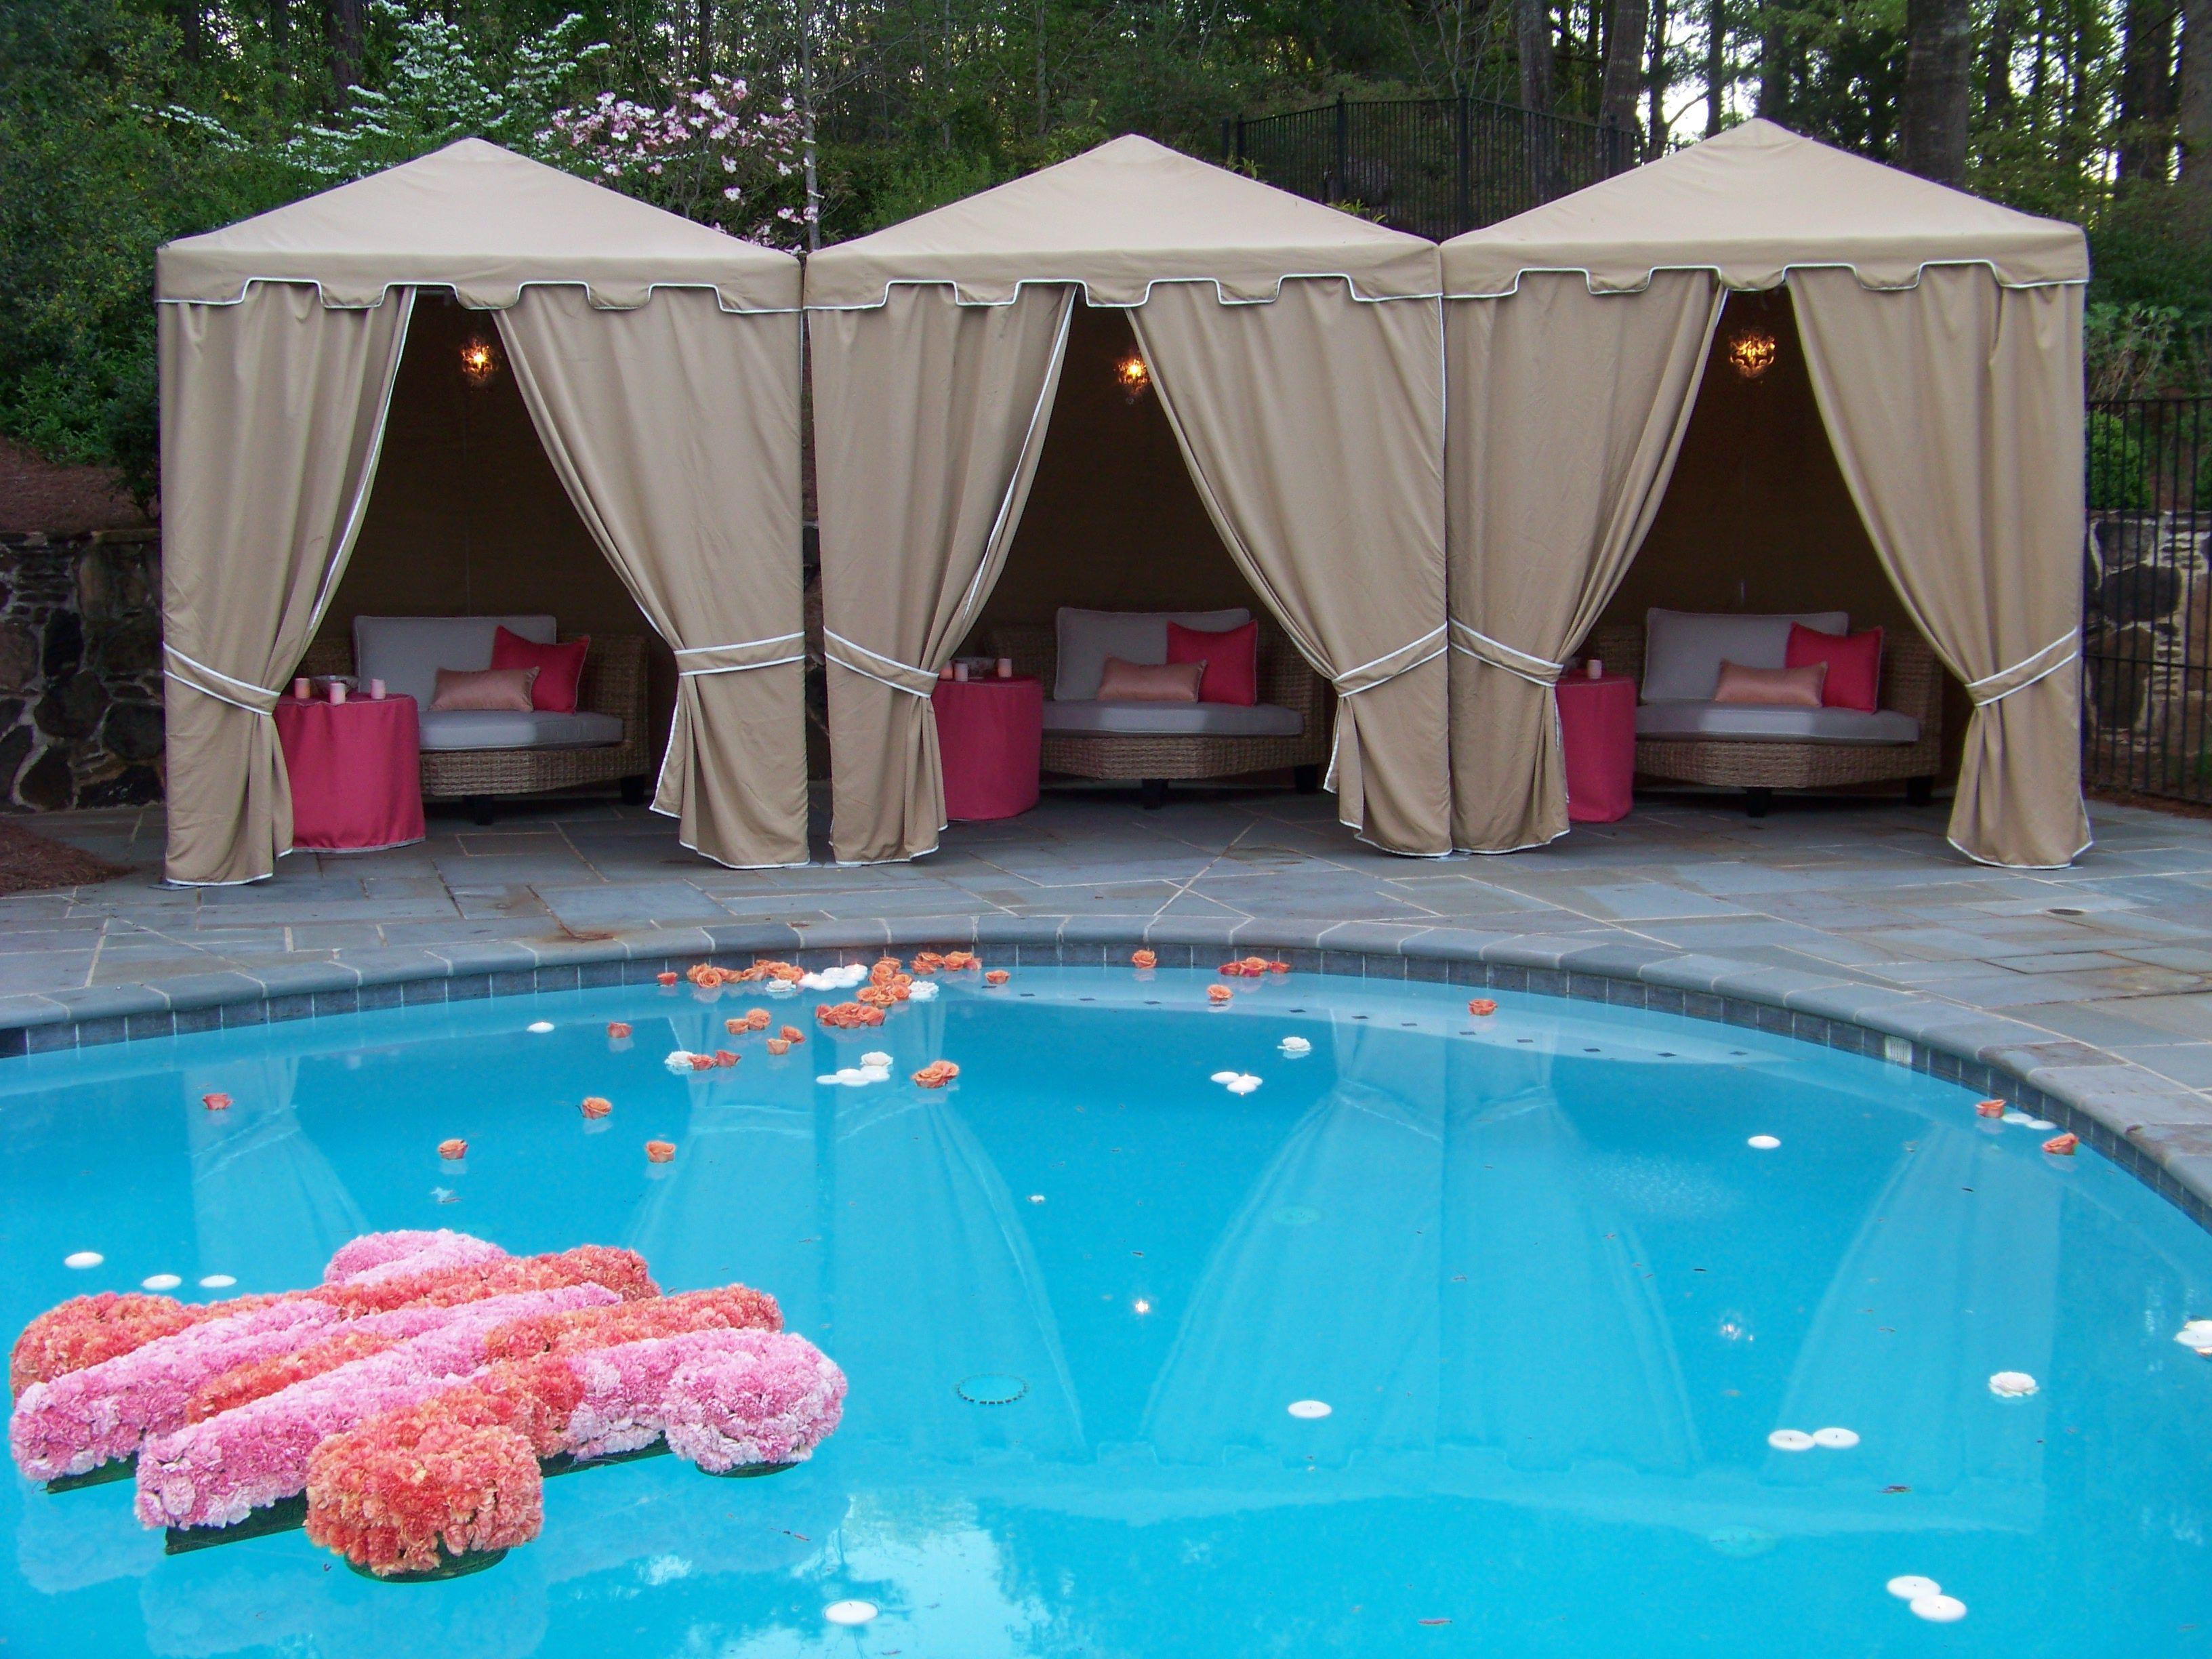 Pool Wedding Decoration Ideas find this pin and more on pool decorating ideas Pool Decor